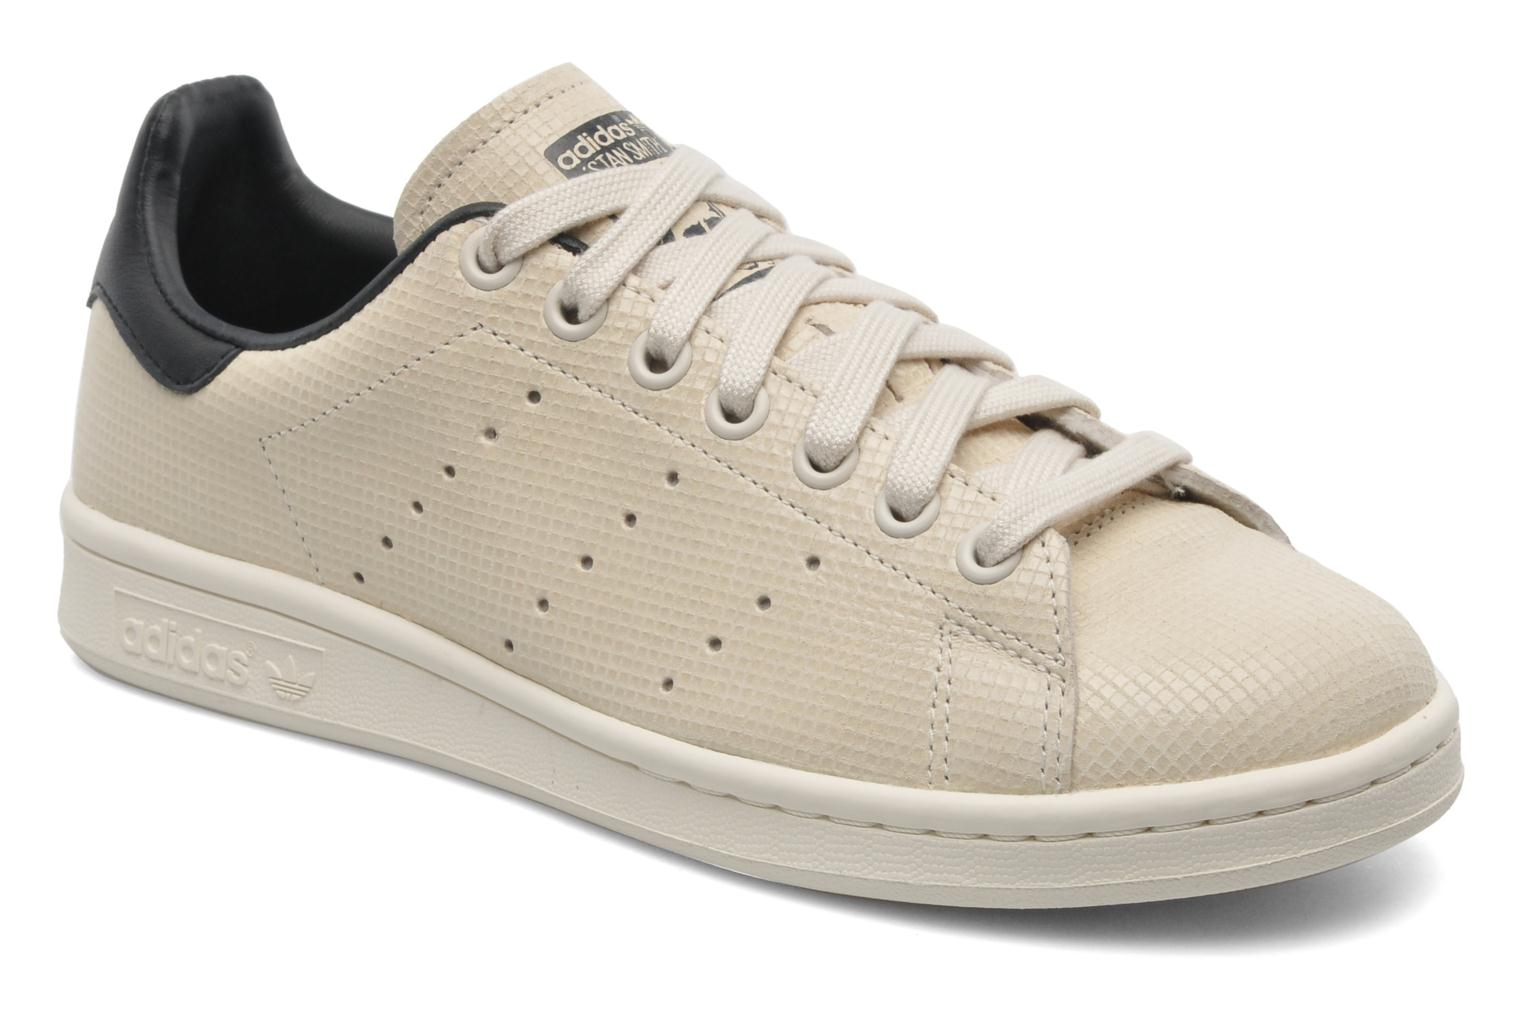 adidas originals stan smith w trainers in beige at sarenza. Black Bedroom Furniture Sets. Home Design Ideas